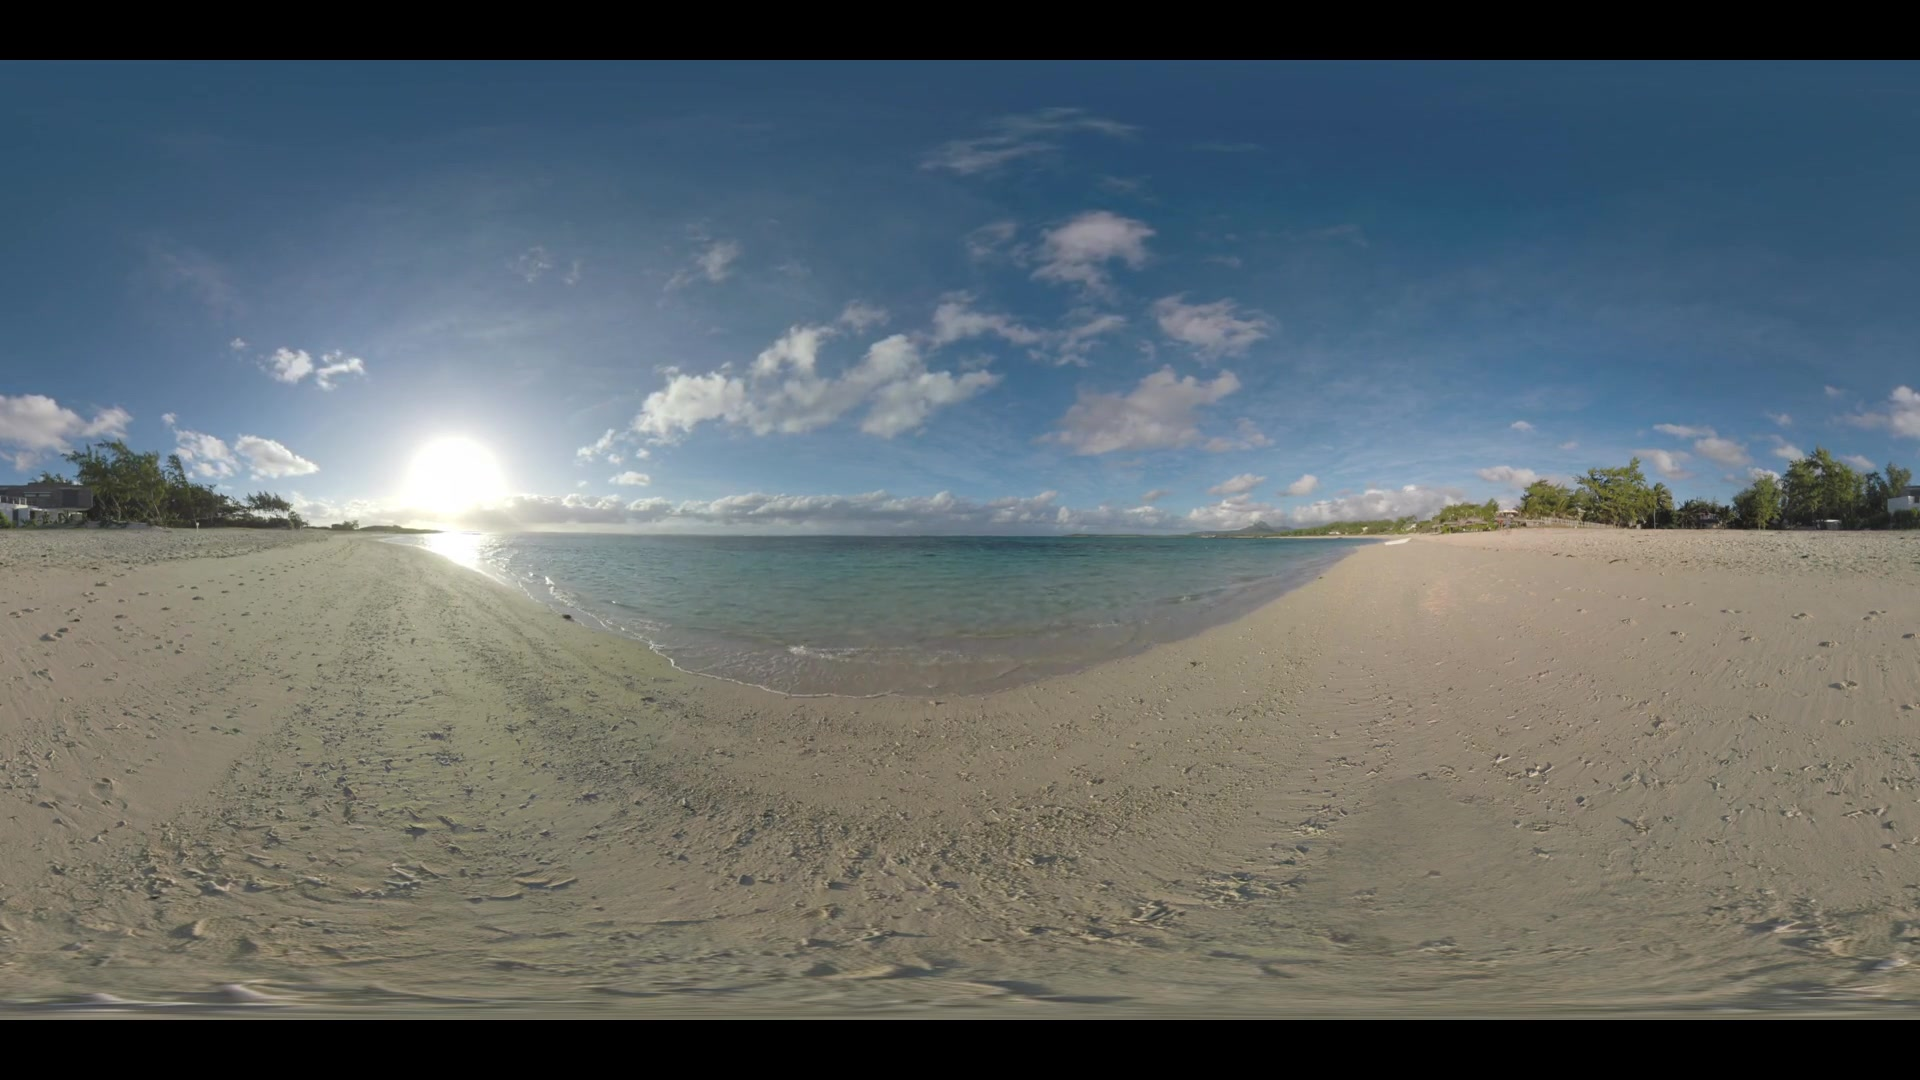 360 VR video. Summer vacation scene with clear blue ocean, beach and bright sunshine. Mauritius coast view with trees and houses alongside